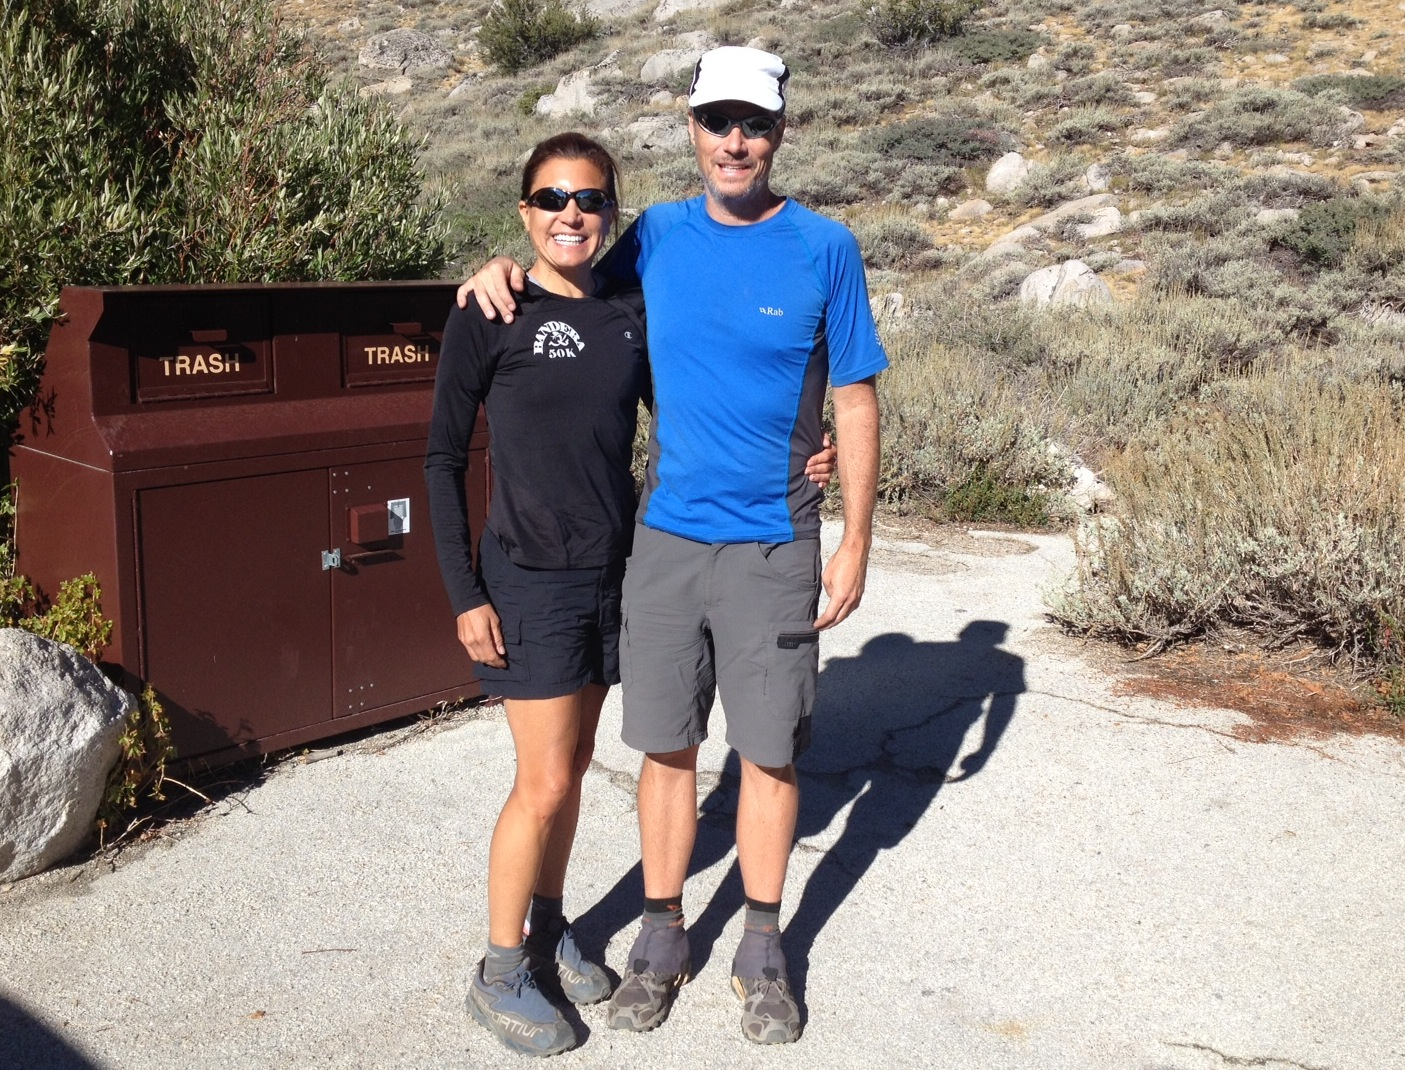 JMT hikers Tracy and Jim from Austin, Texas, hit the trail after two nights at the Base Camp.